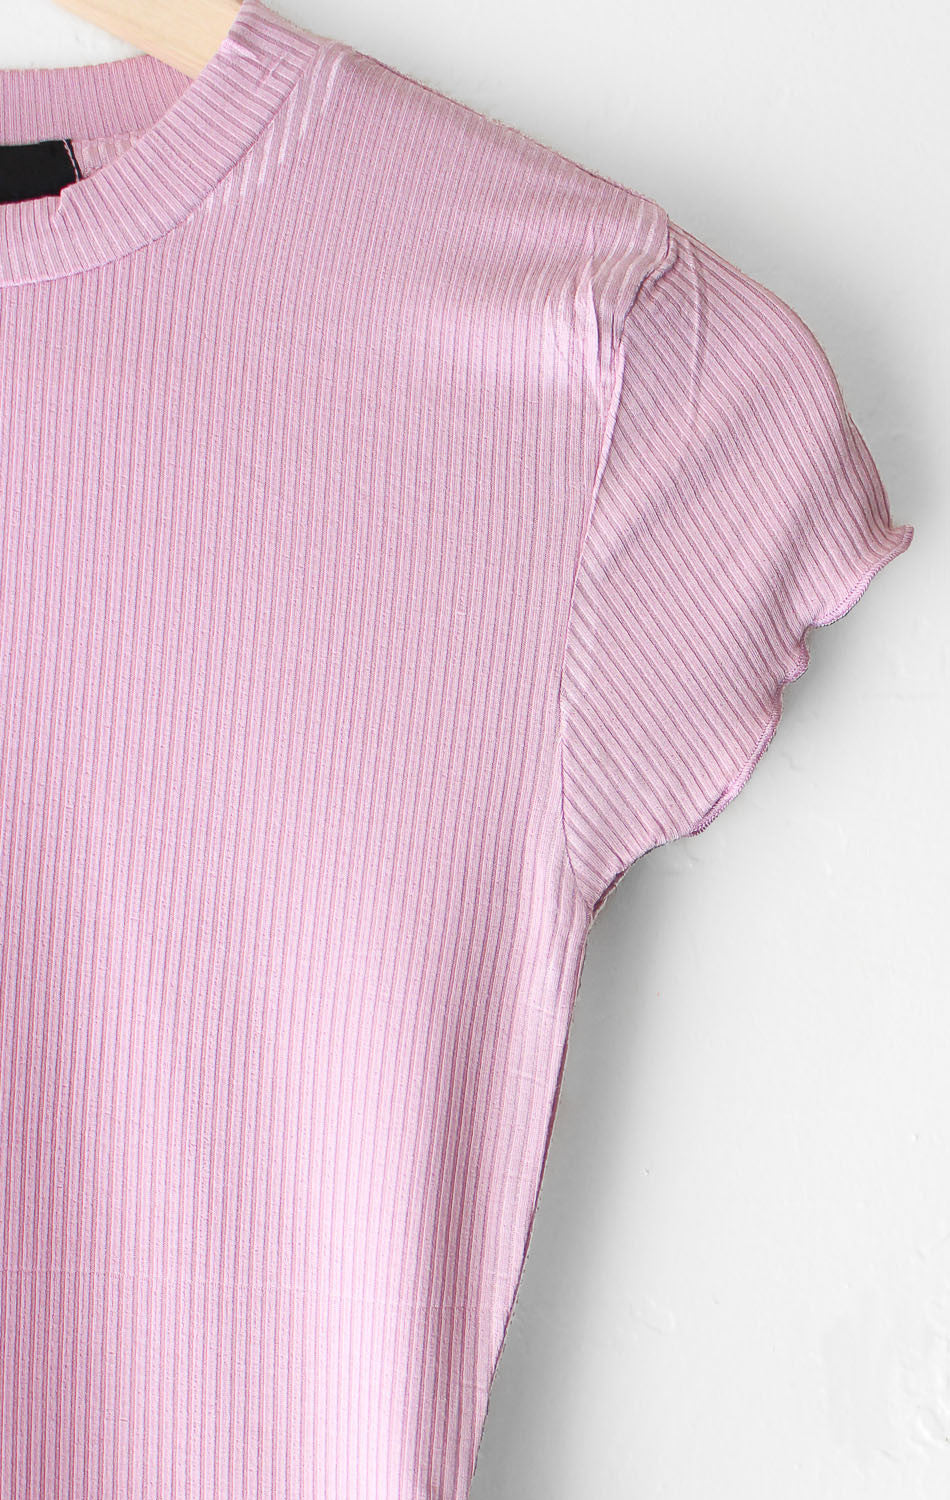 NYCT Clothing Basic Crop Top - Mauve